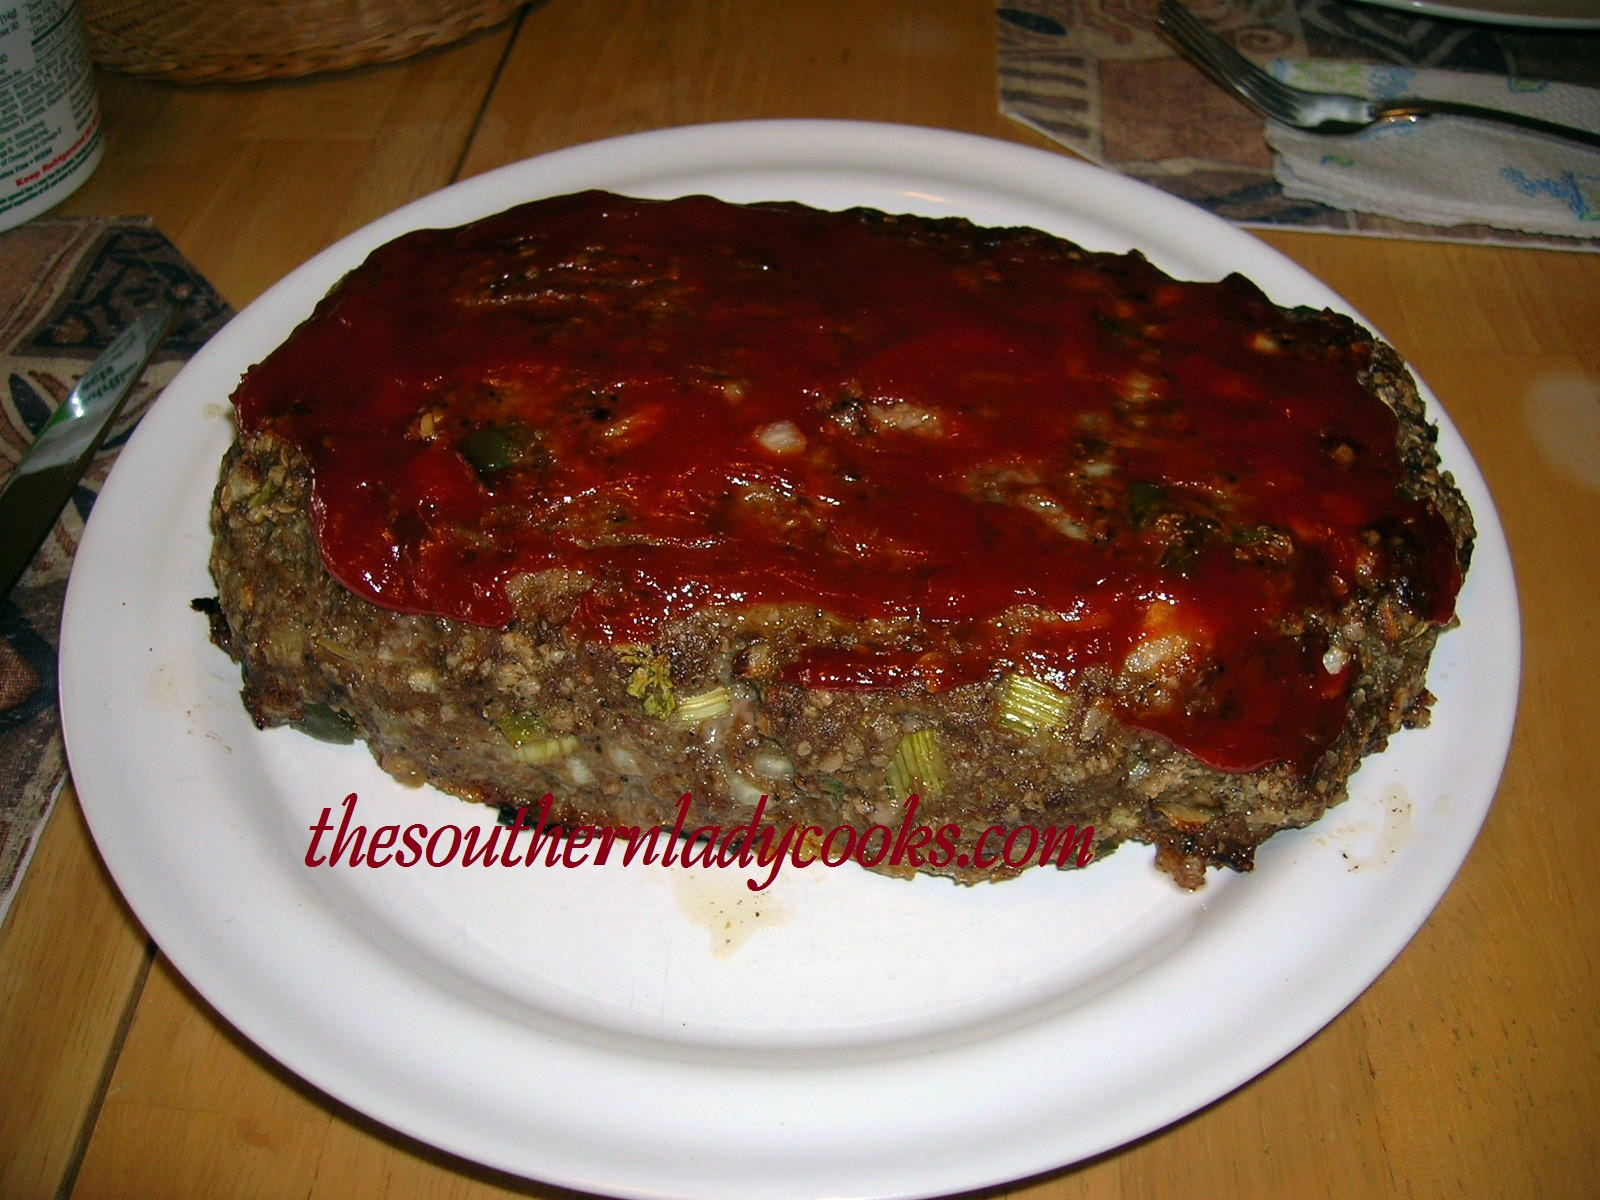 MY FAMILY'S FAVORITE MEATLOAF